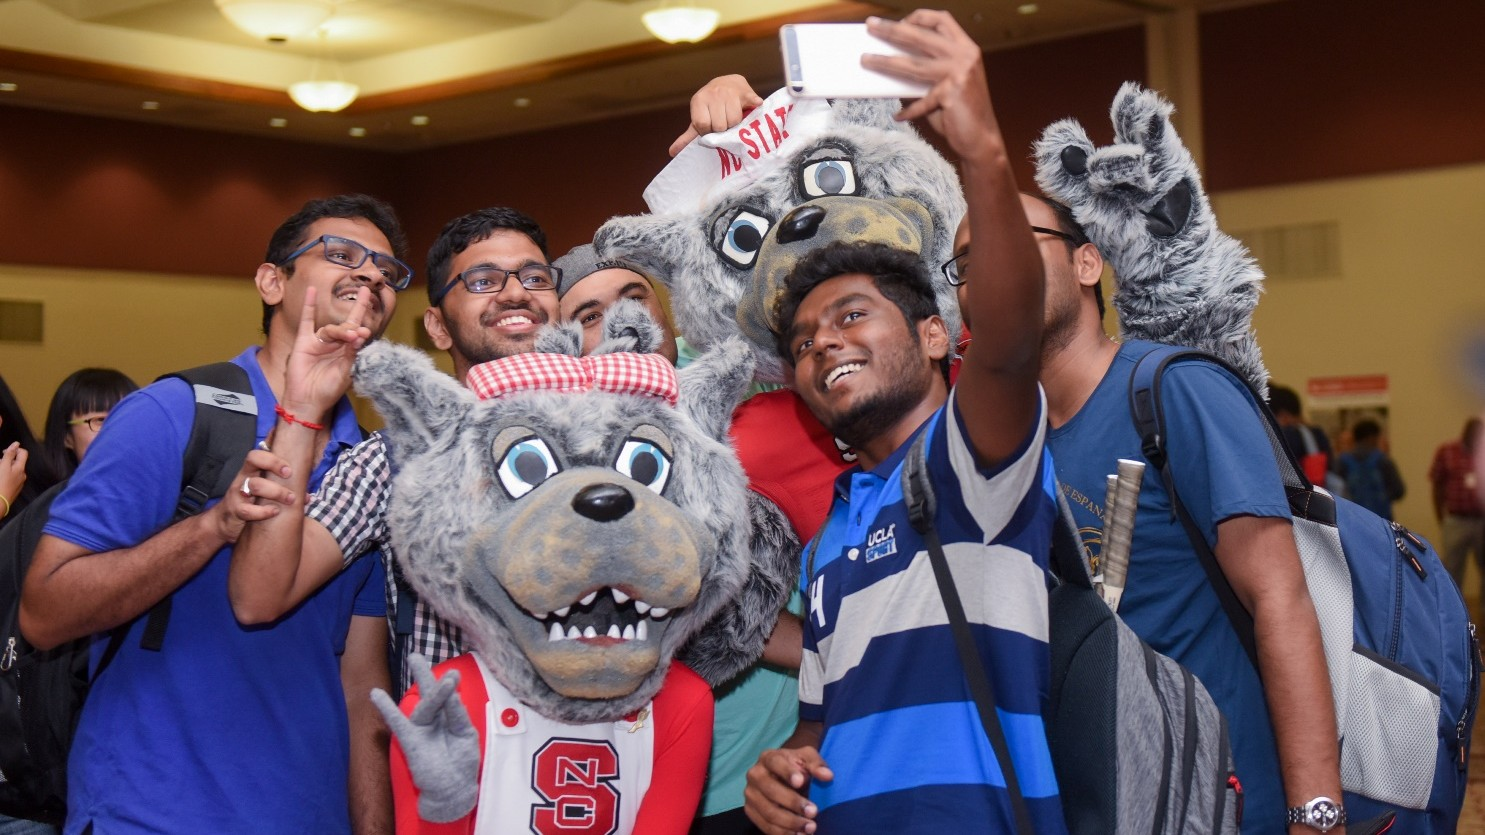 Wolf mascots with students